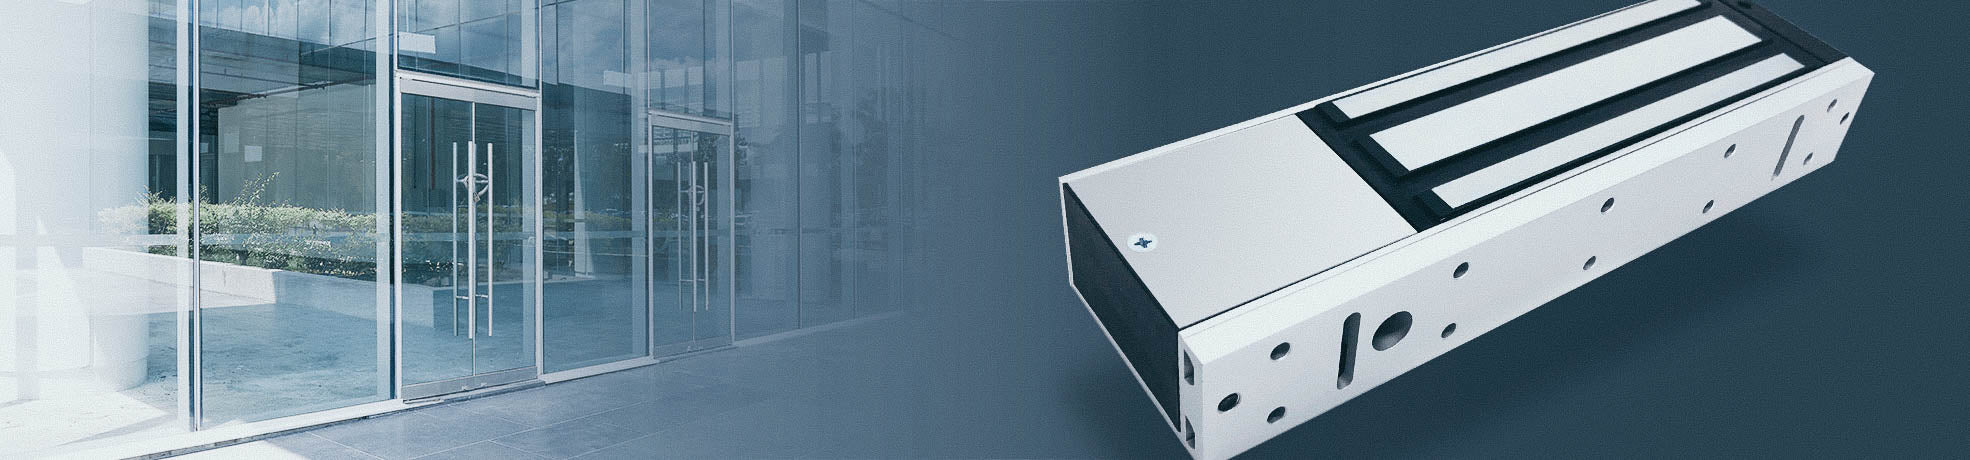 Magnetic Locks | All Security Equipment